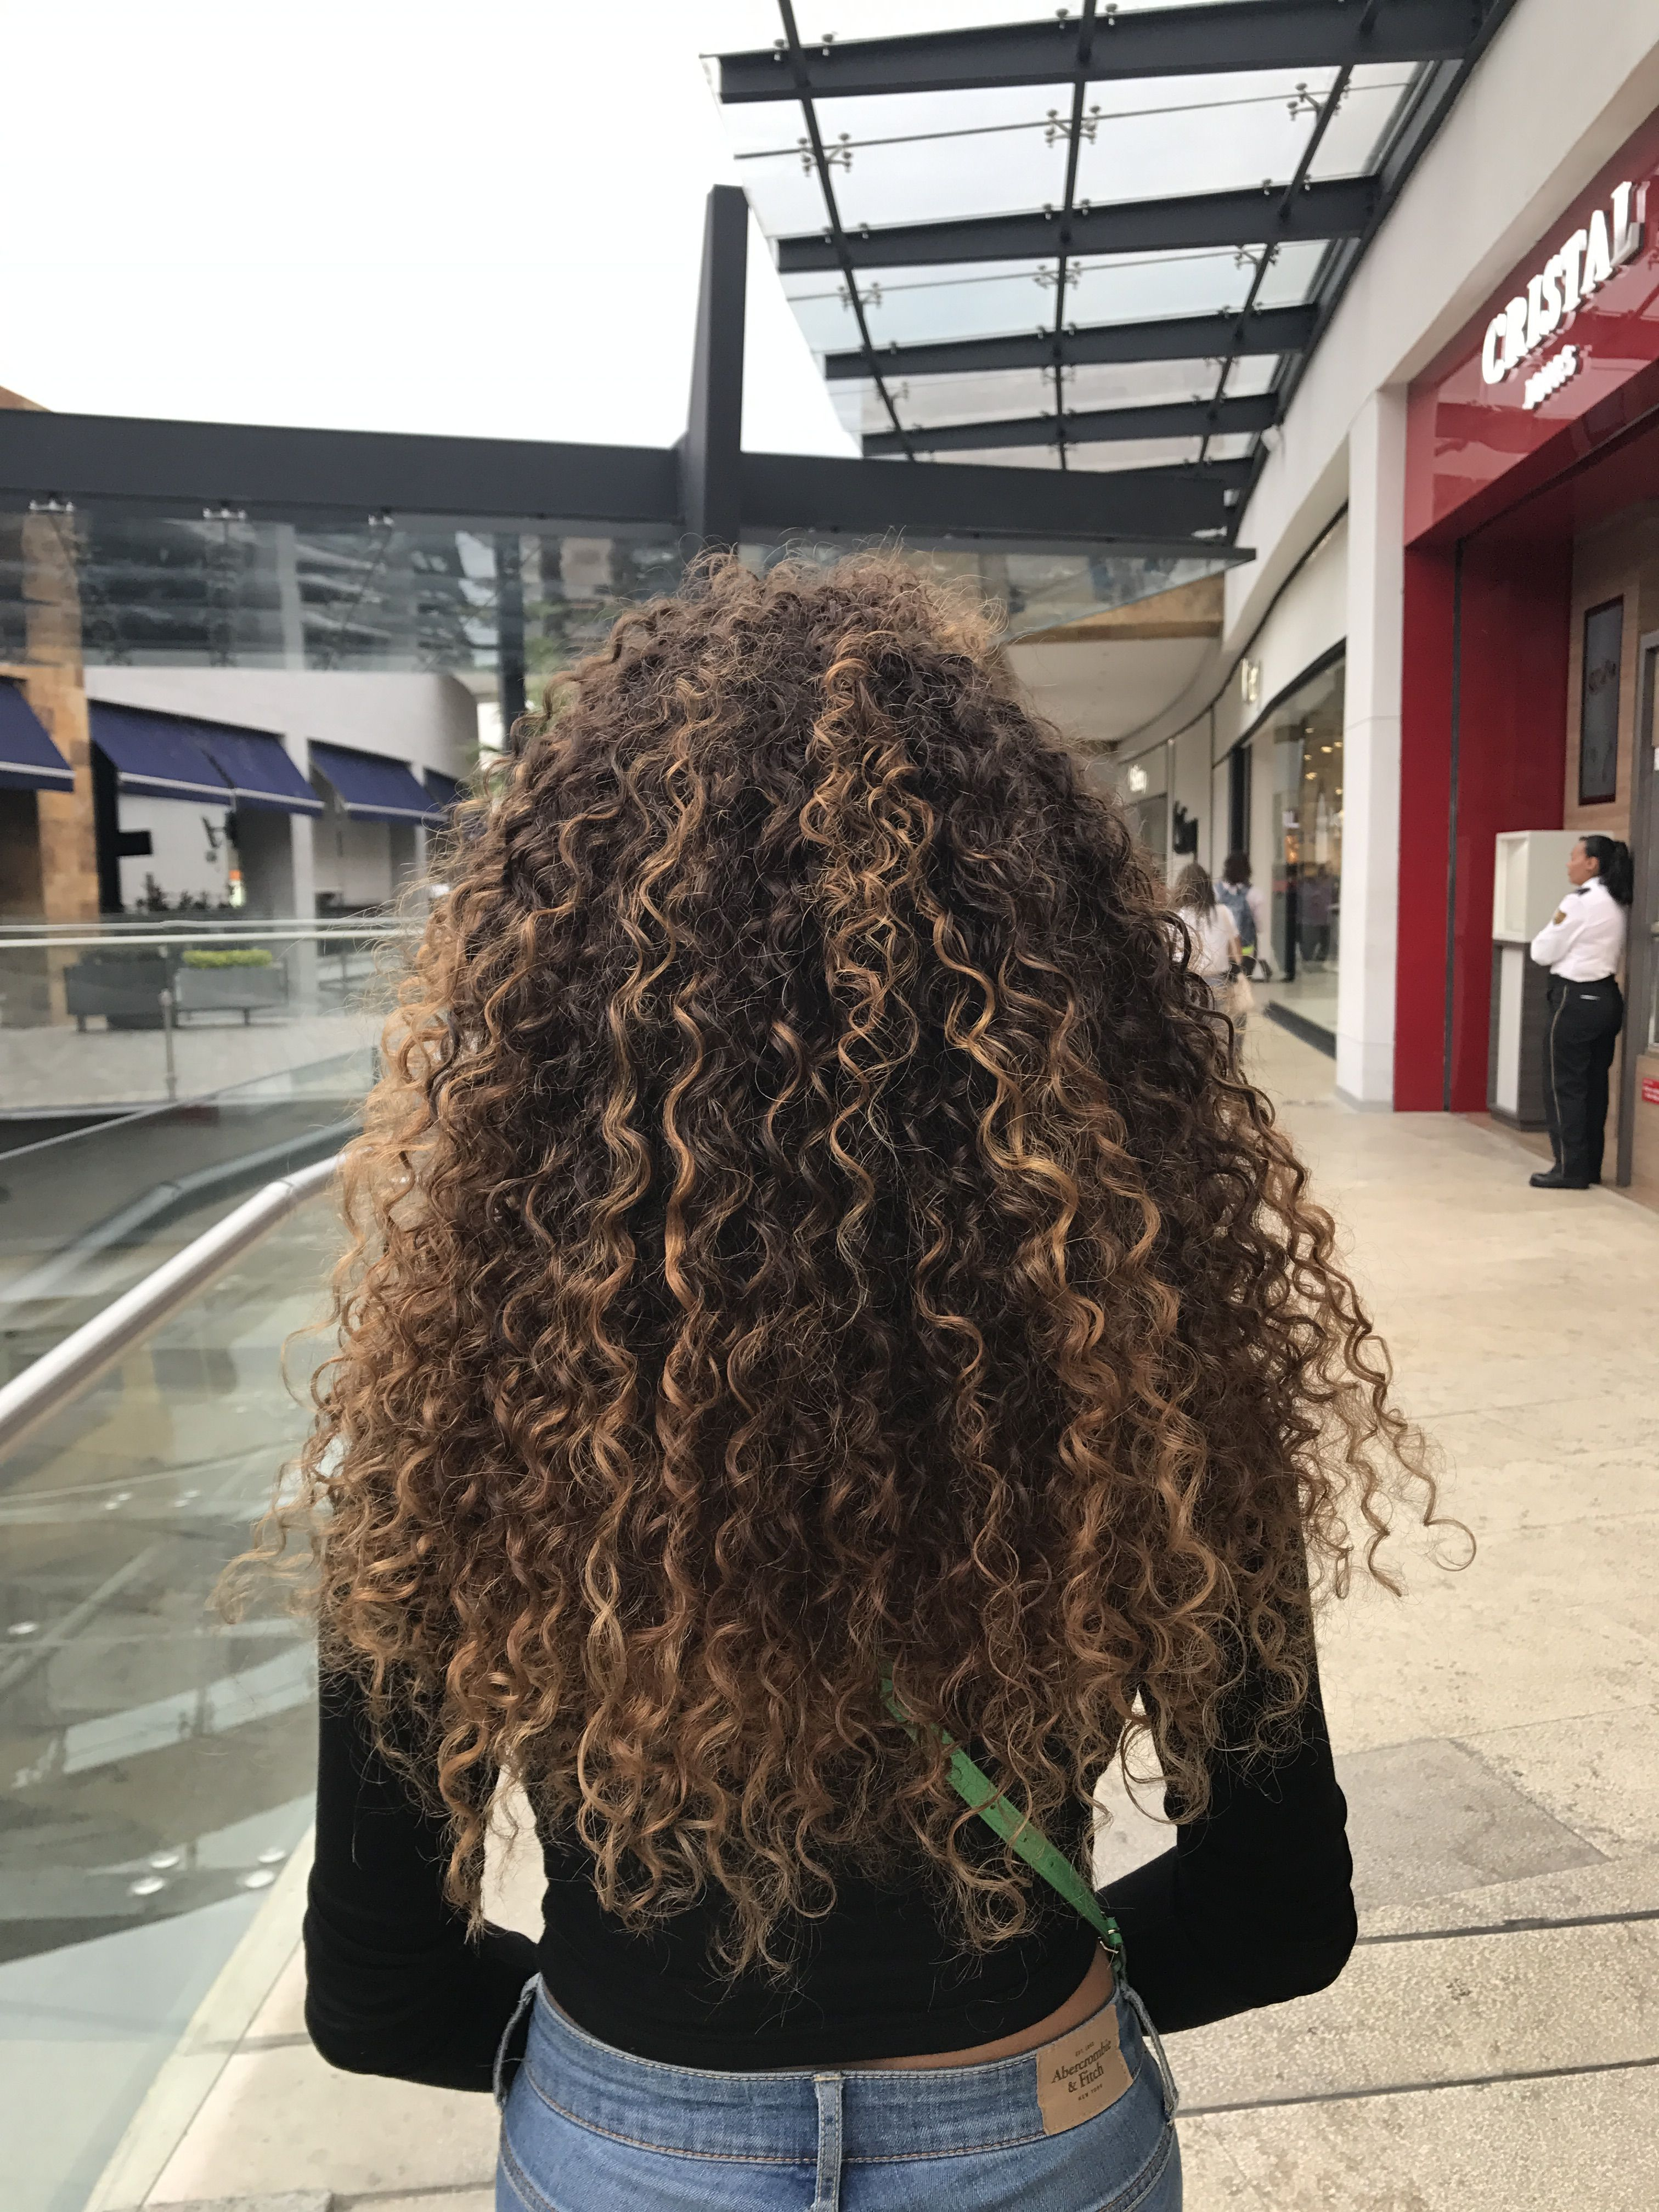 Balayage Curly Curls Highlights Curly Hair Curly Hair Styles Curly Hair Styles Naturally